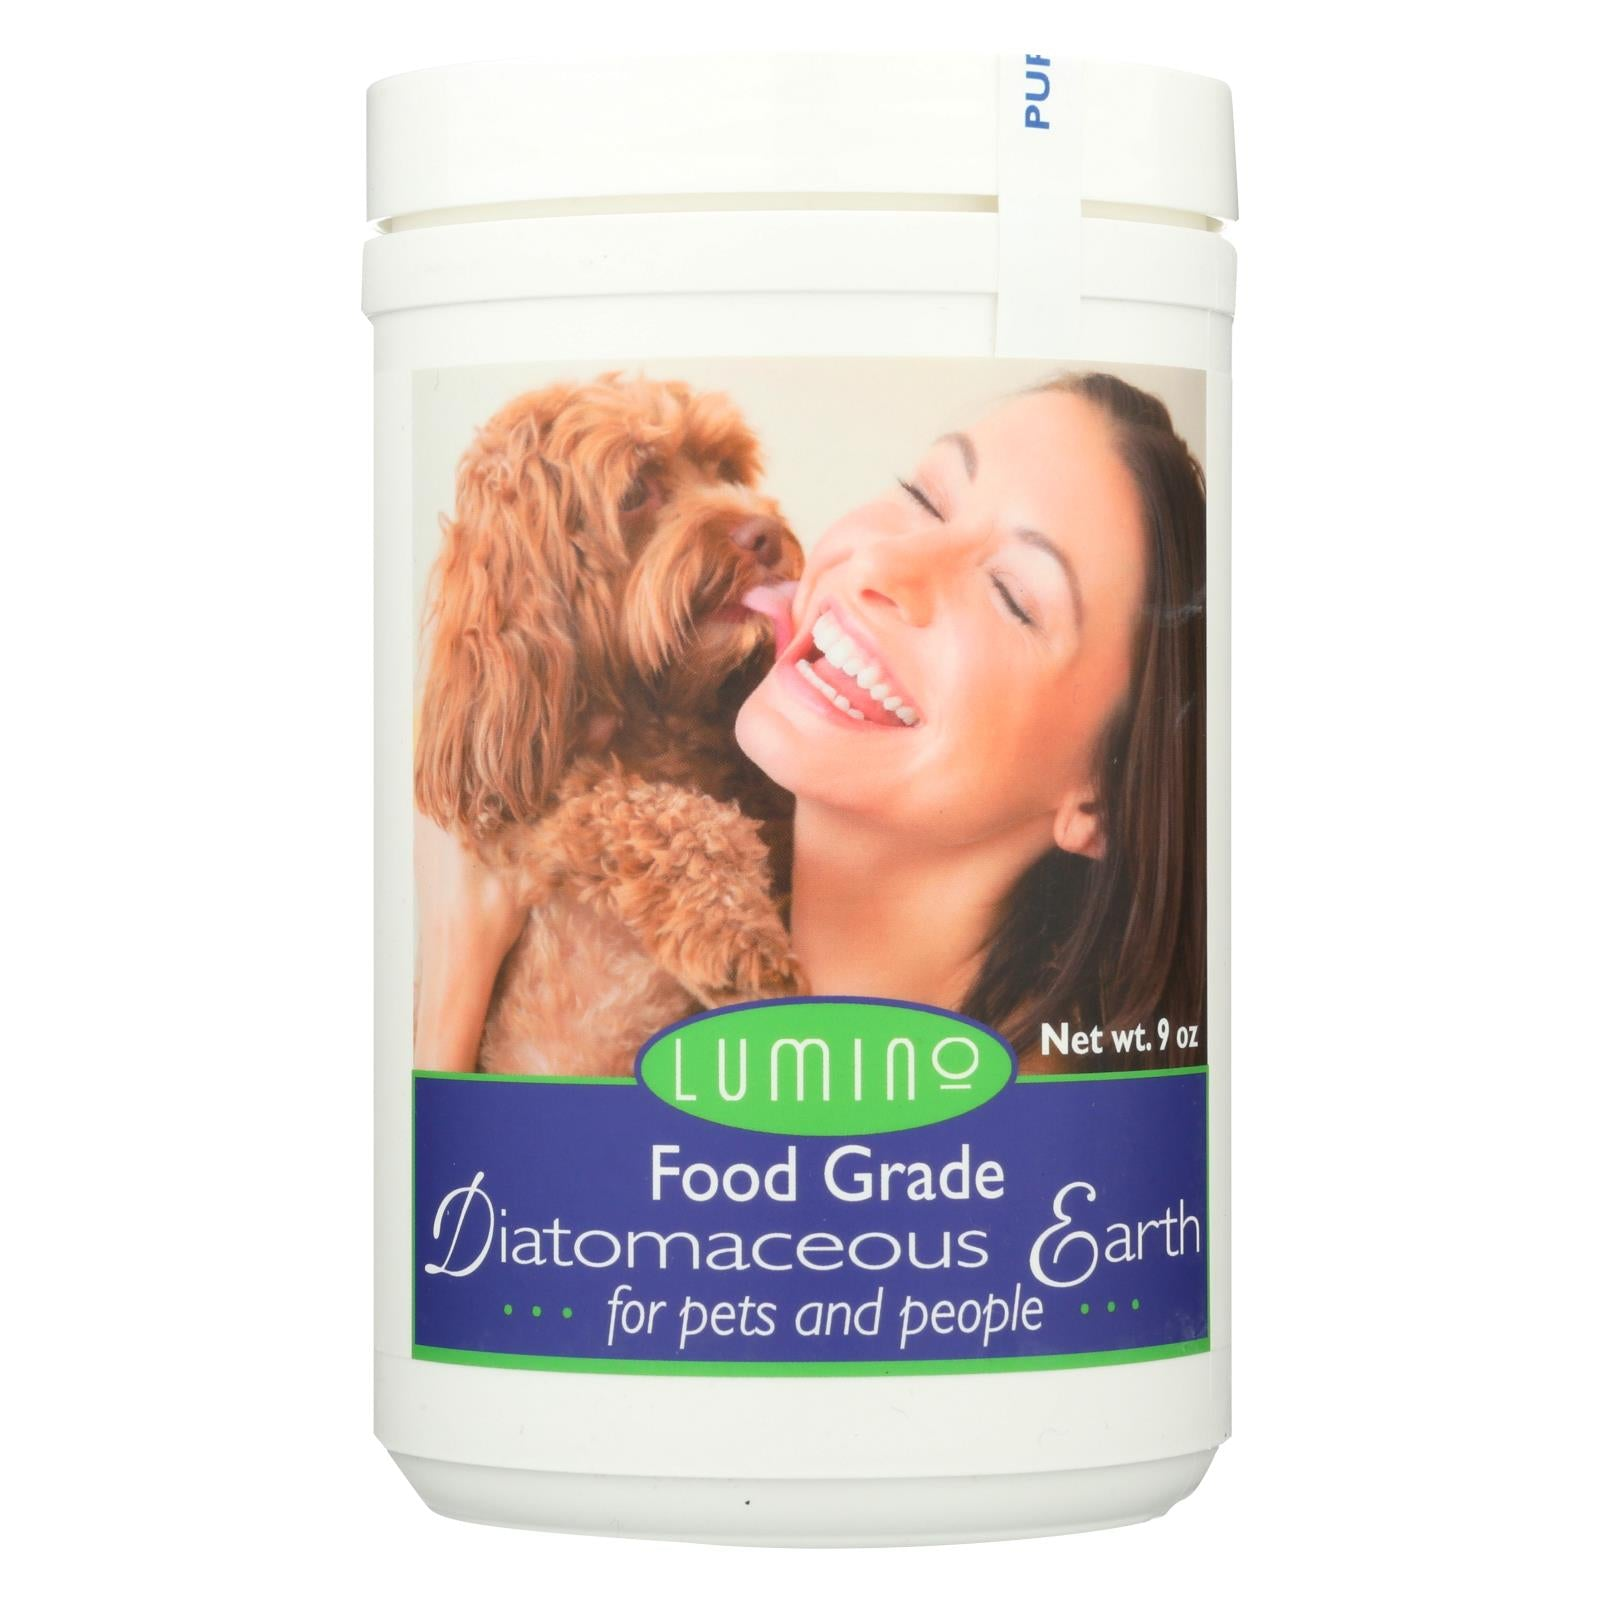 Lumino Diatomaceous Earth For Pets Food Grade